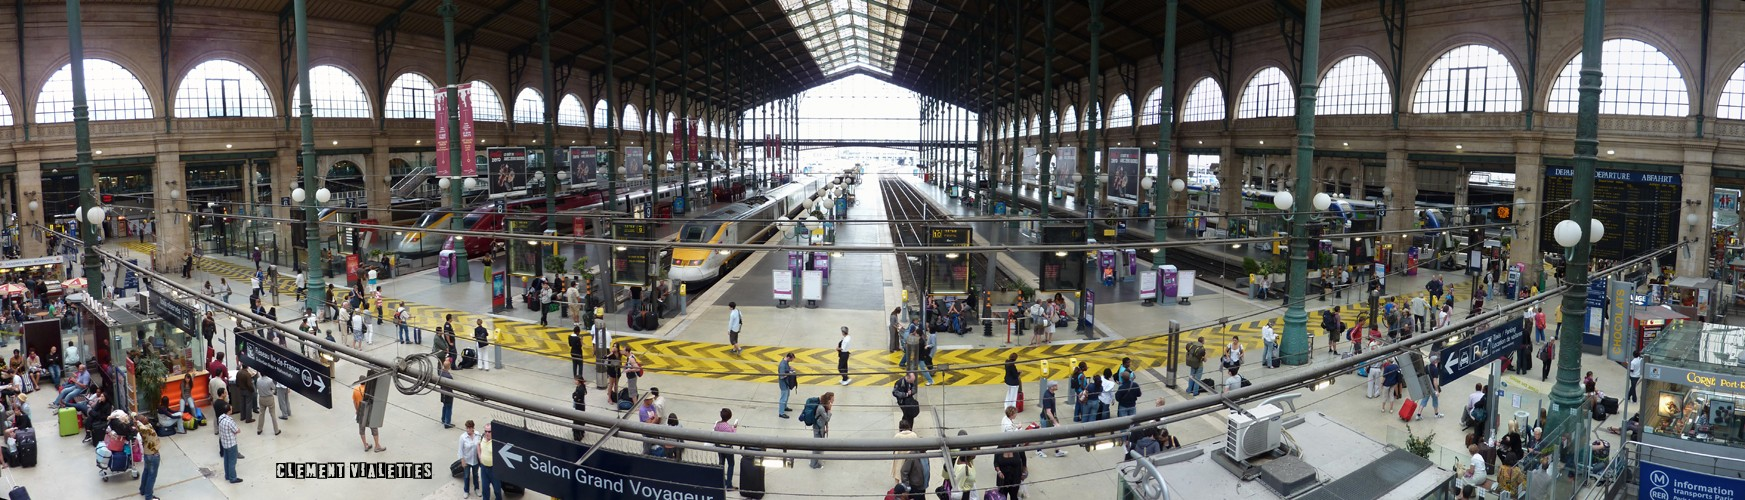 france-paris_gare_du_nord_02.jpg